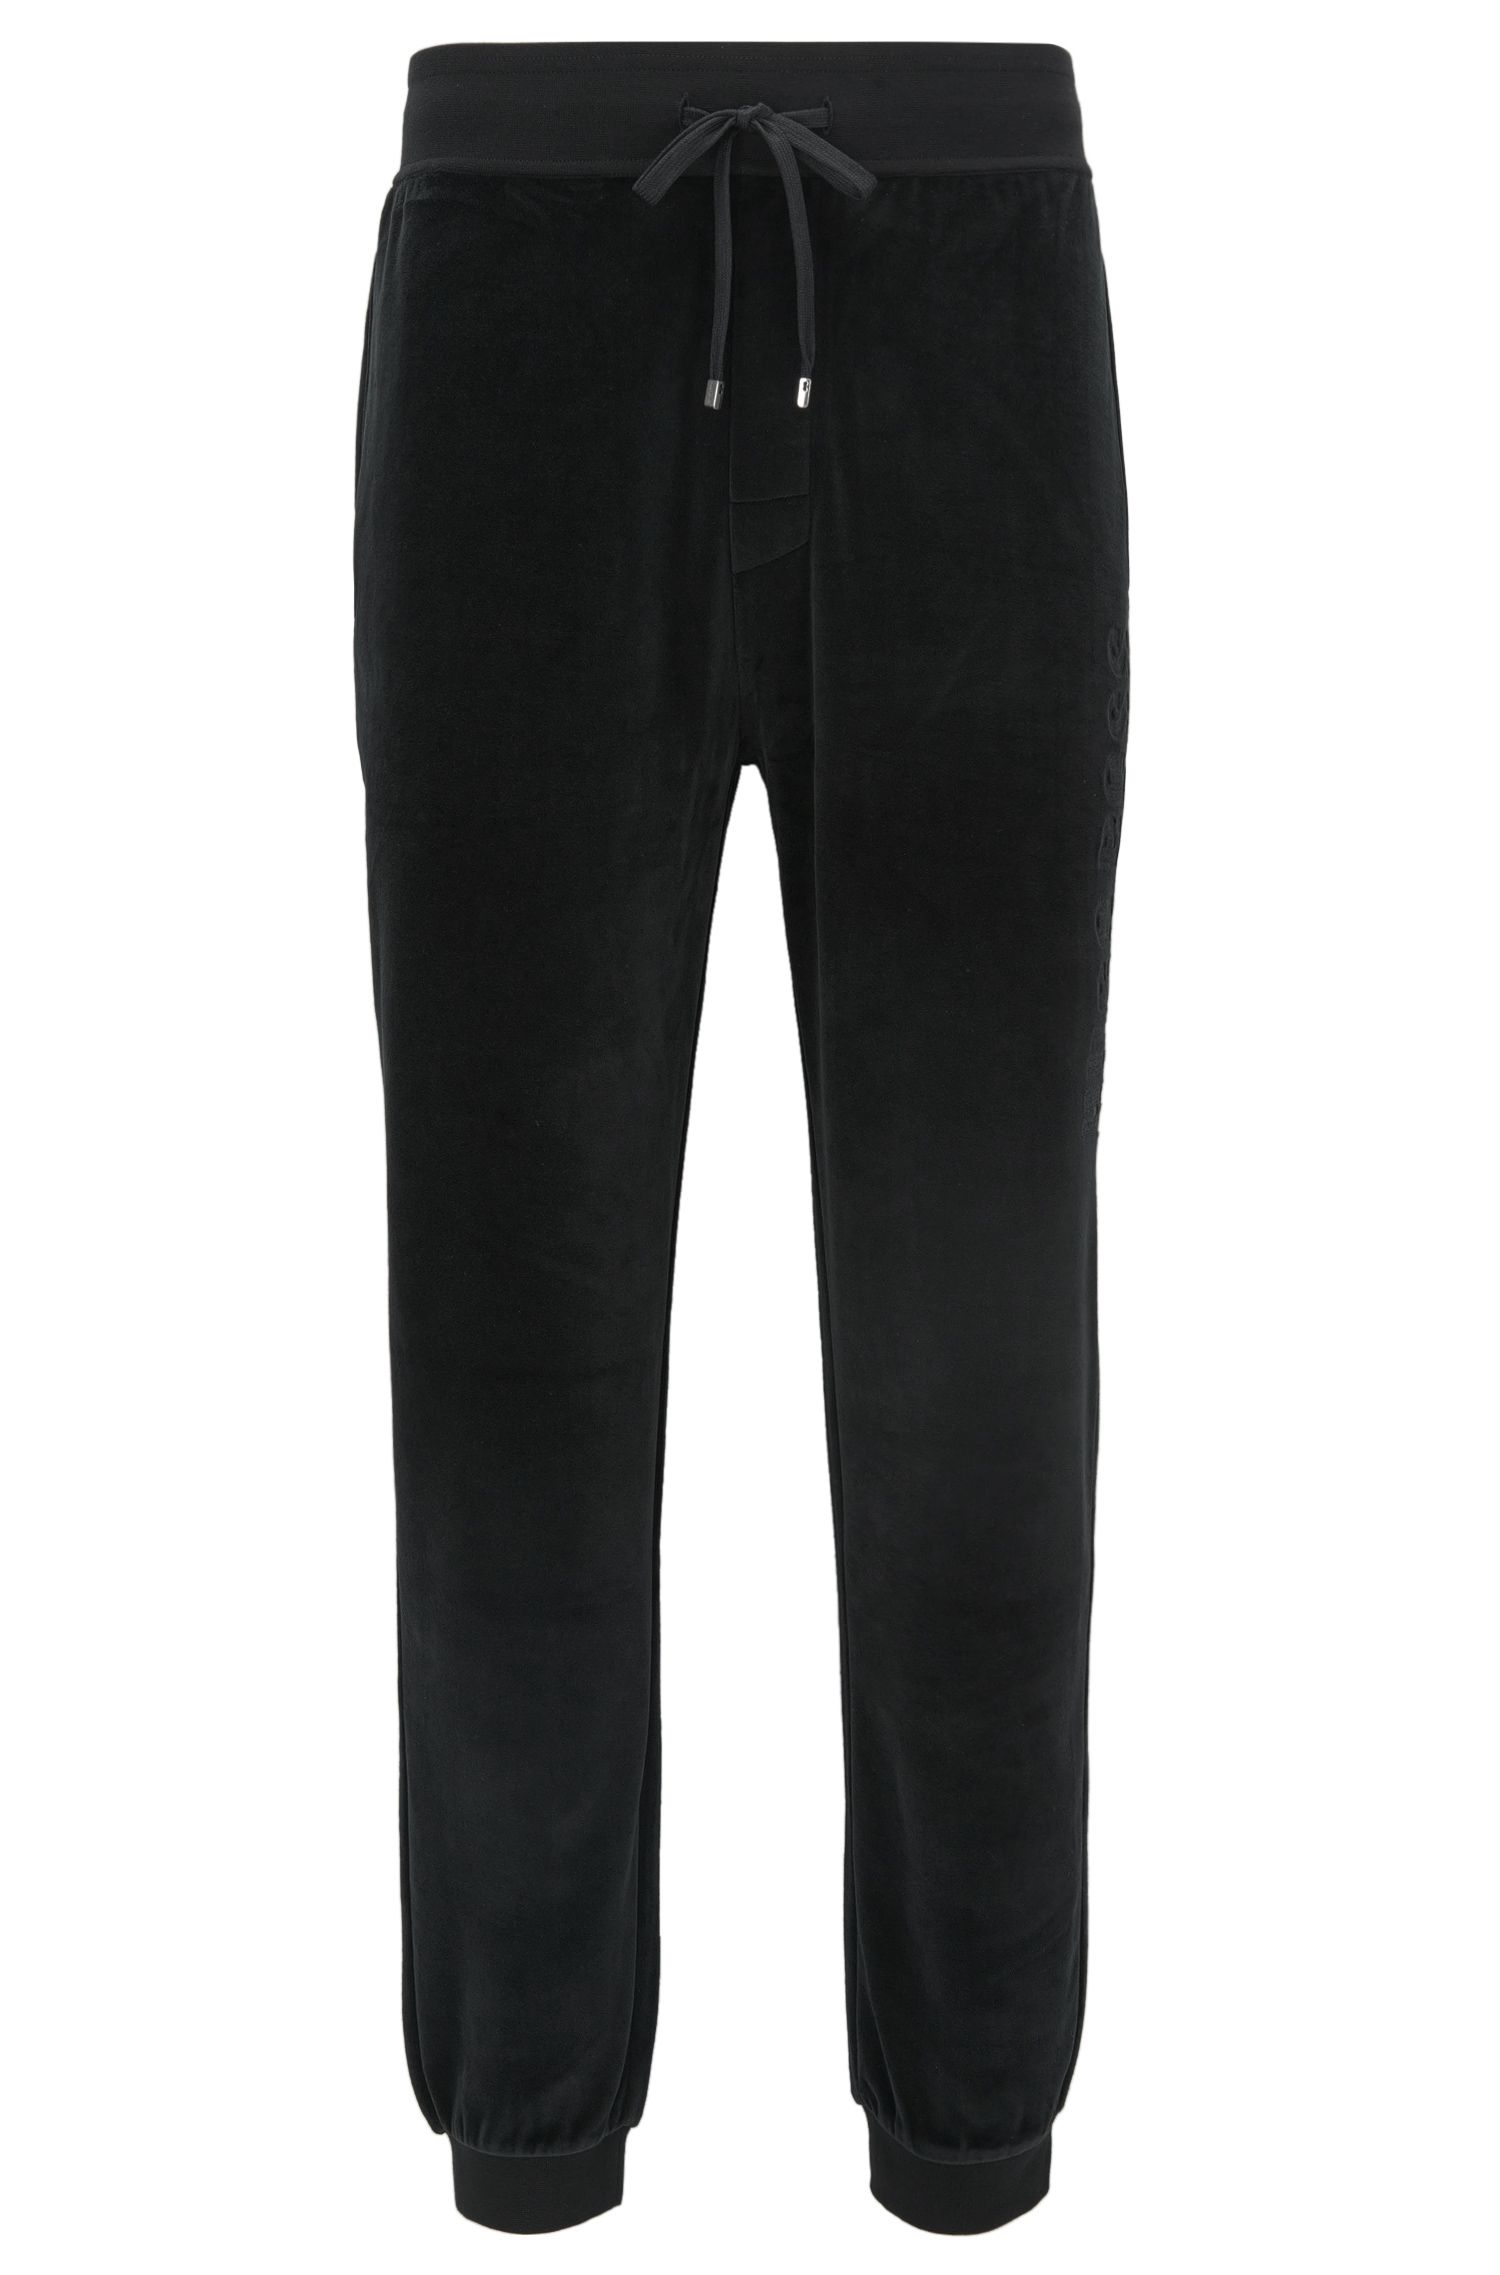 Velour trousers with cuffed hems